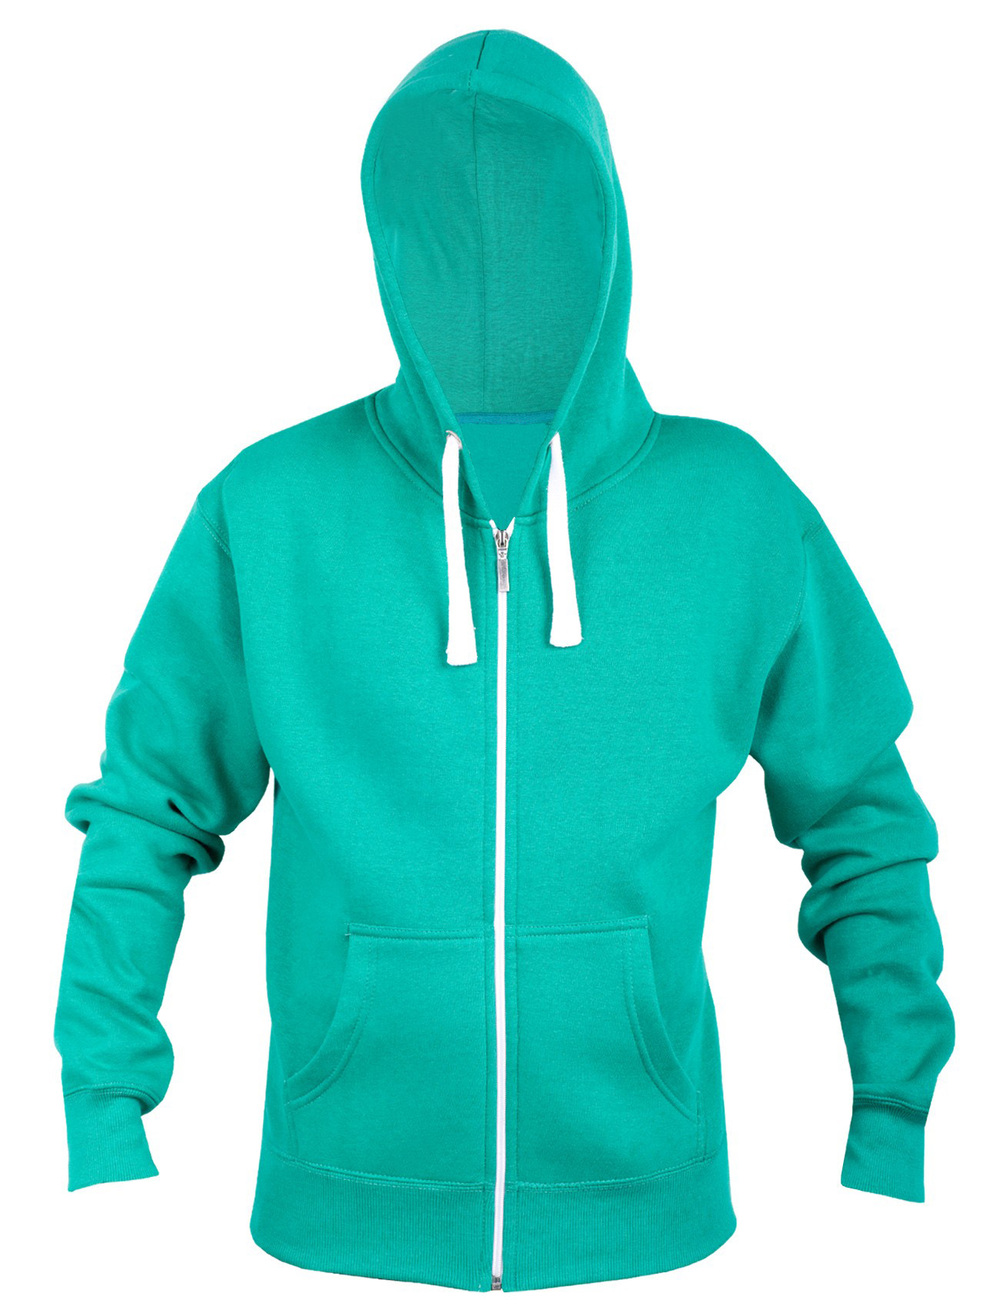 Custom wholesale blank pullover hoodies men buy hoodies for Custom shirts and hoodies cheap